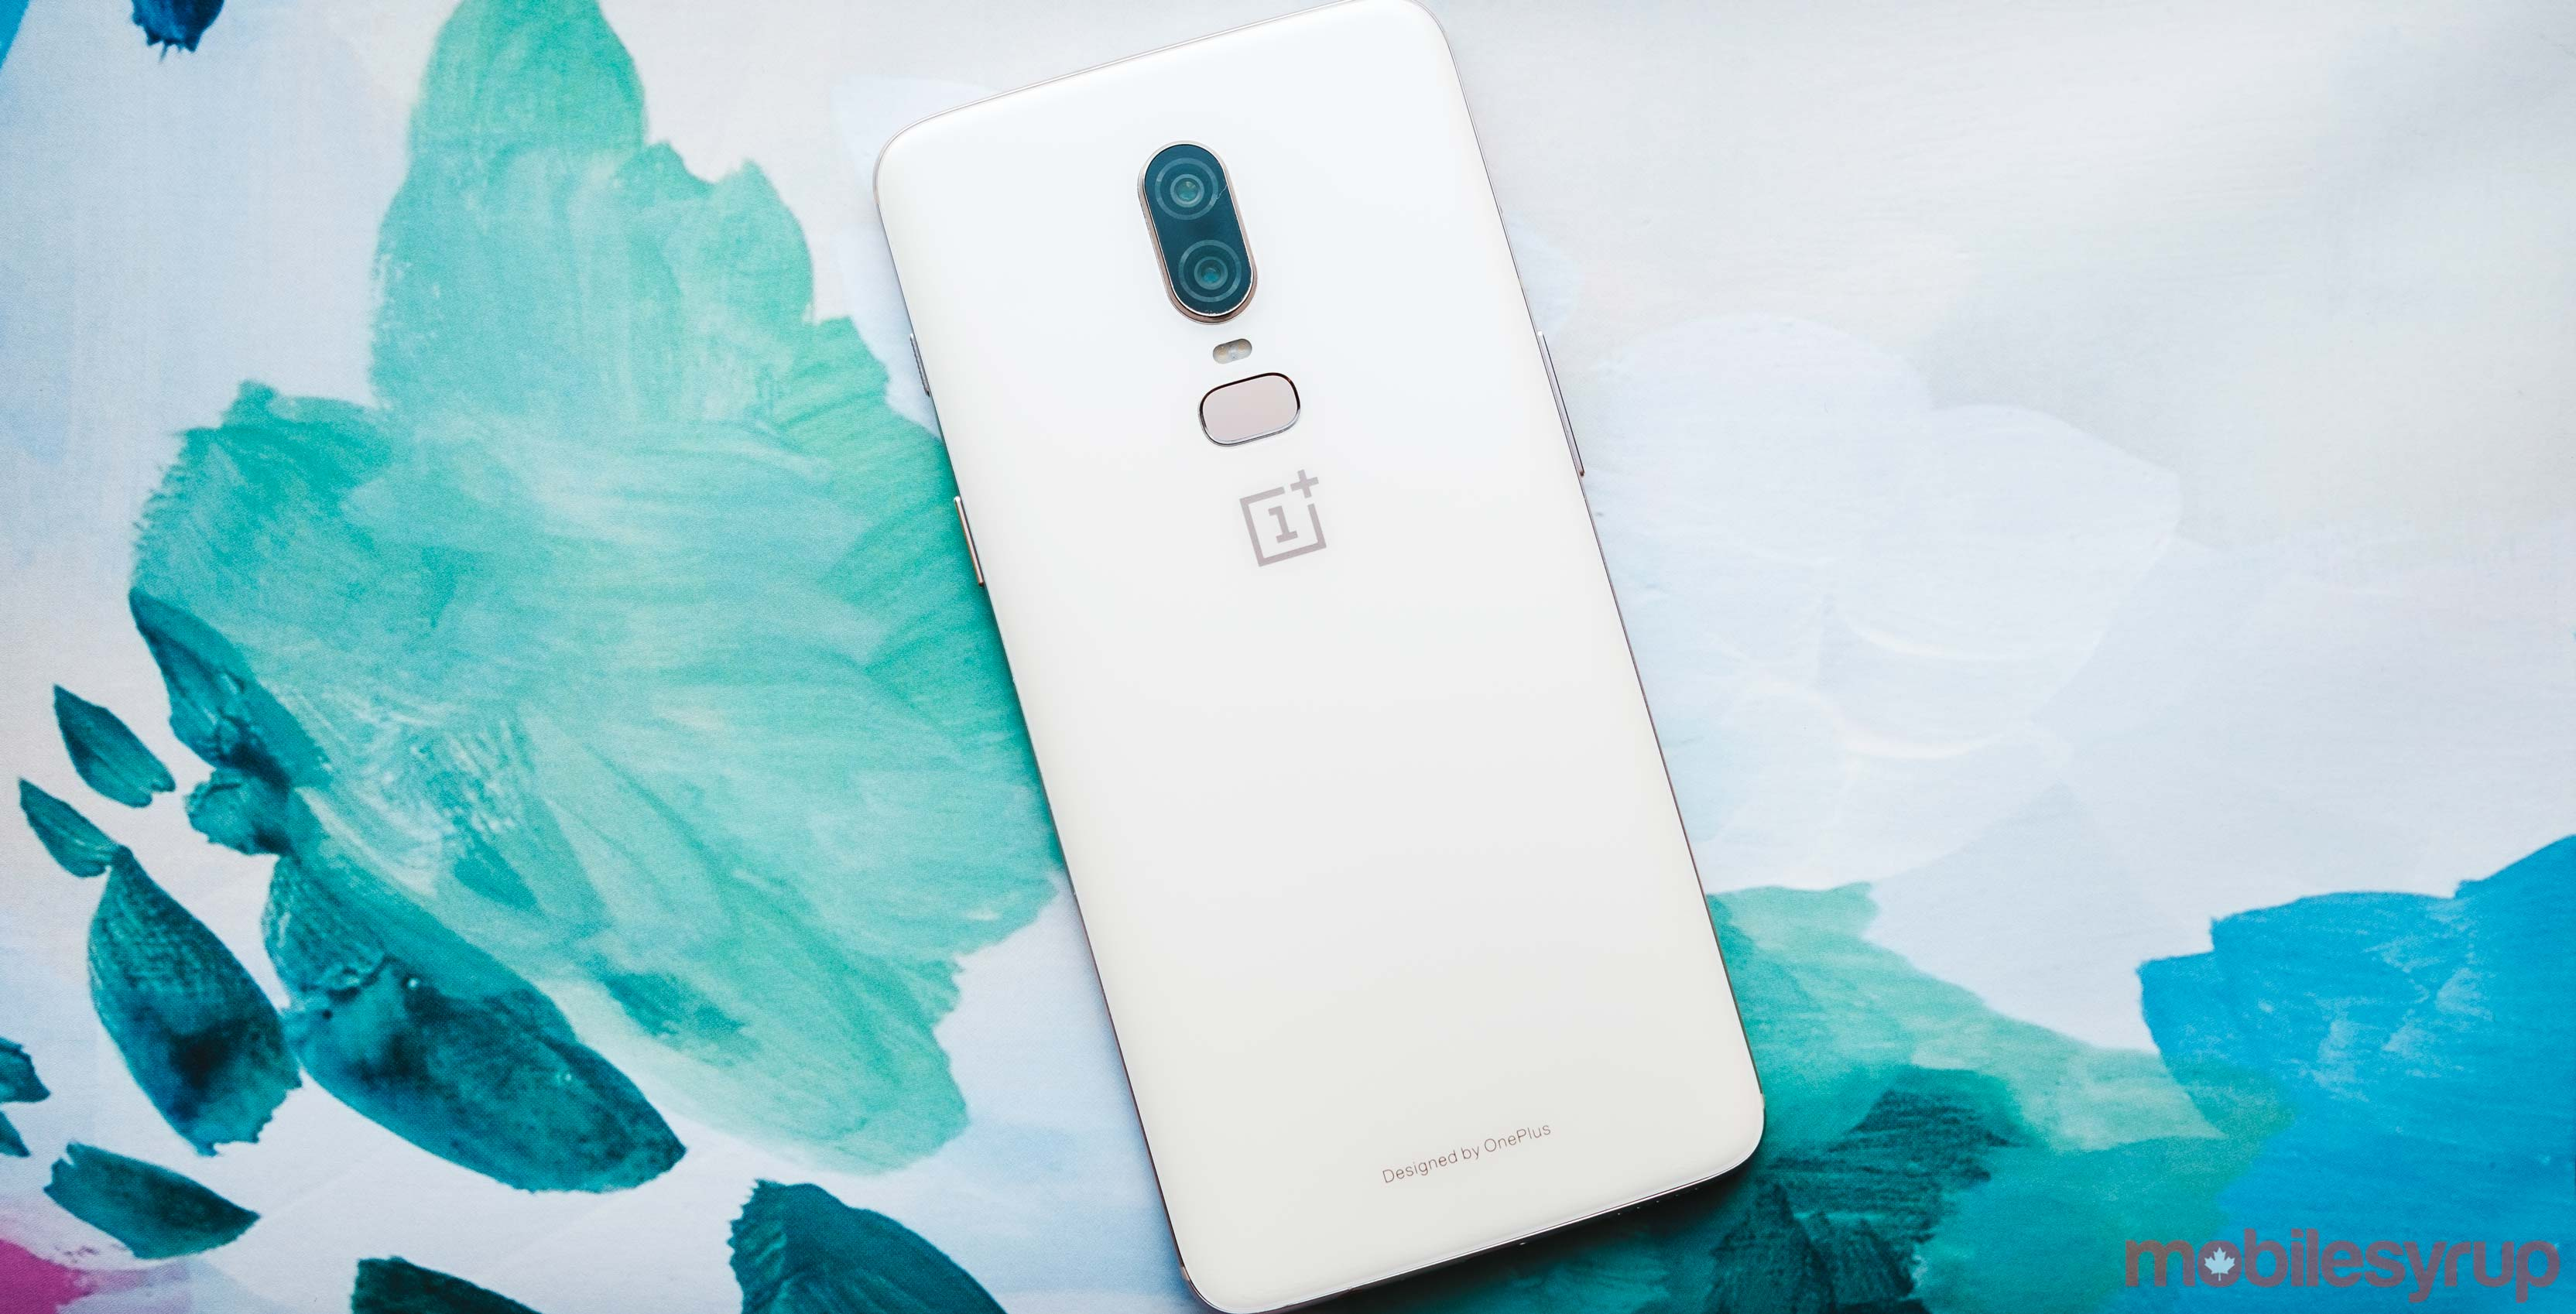 OnePlus latest' flagship, the OnePlus 6